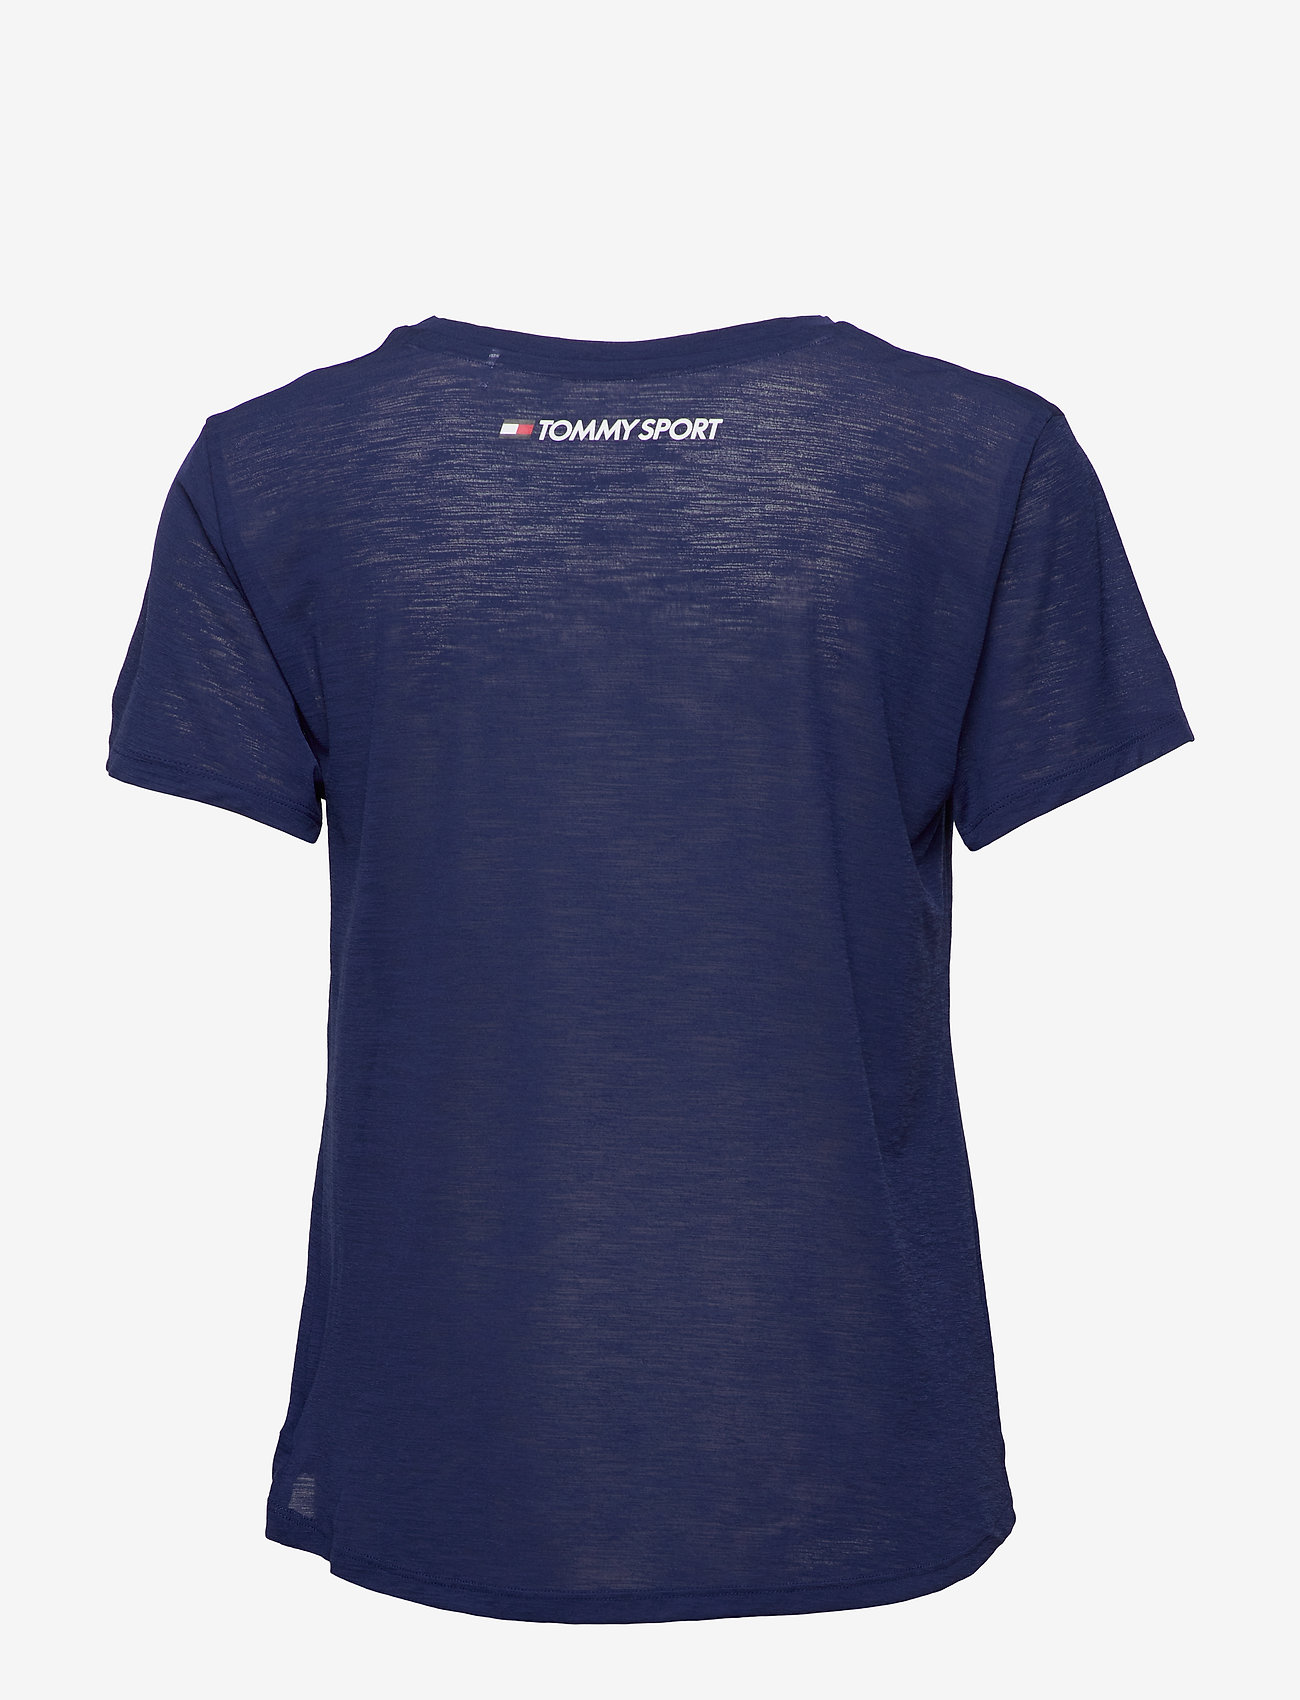 Tommy Sport - PERFORMANCE LBR TOP - t-shirts - blue ink - 1